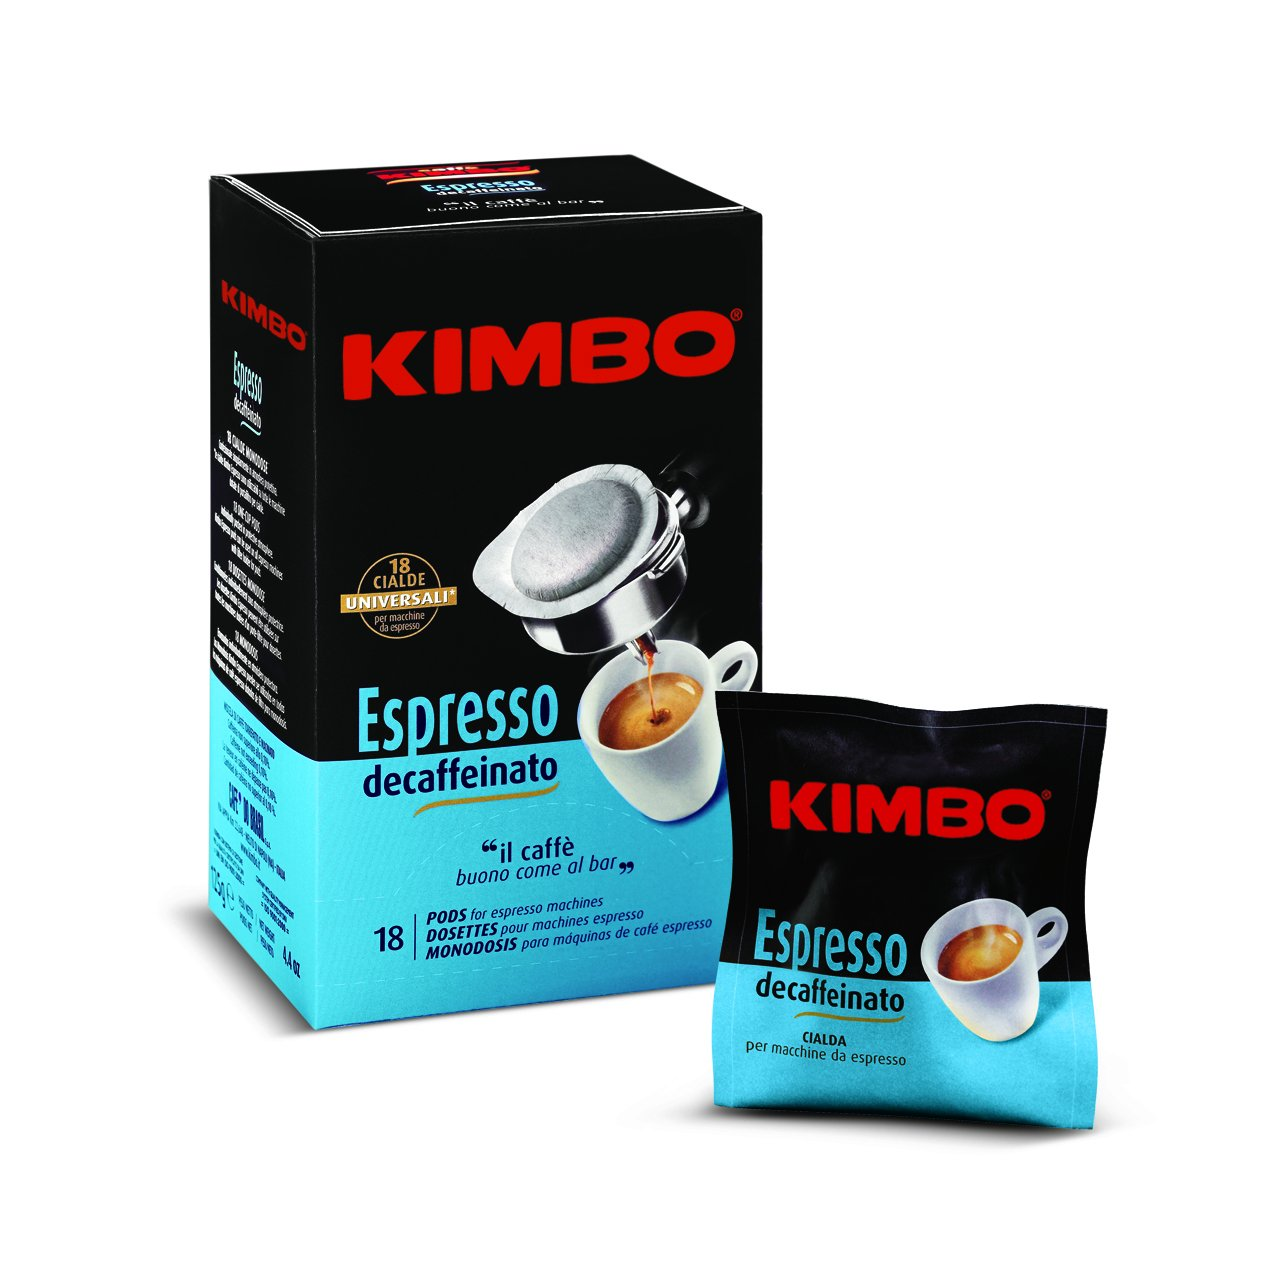 Amazon.com : Kimbo Espresso Decaf Coffee, 18 Pods : Grocery & Gourmet Food